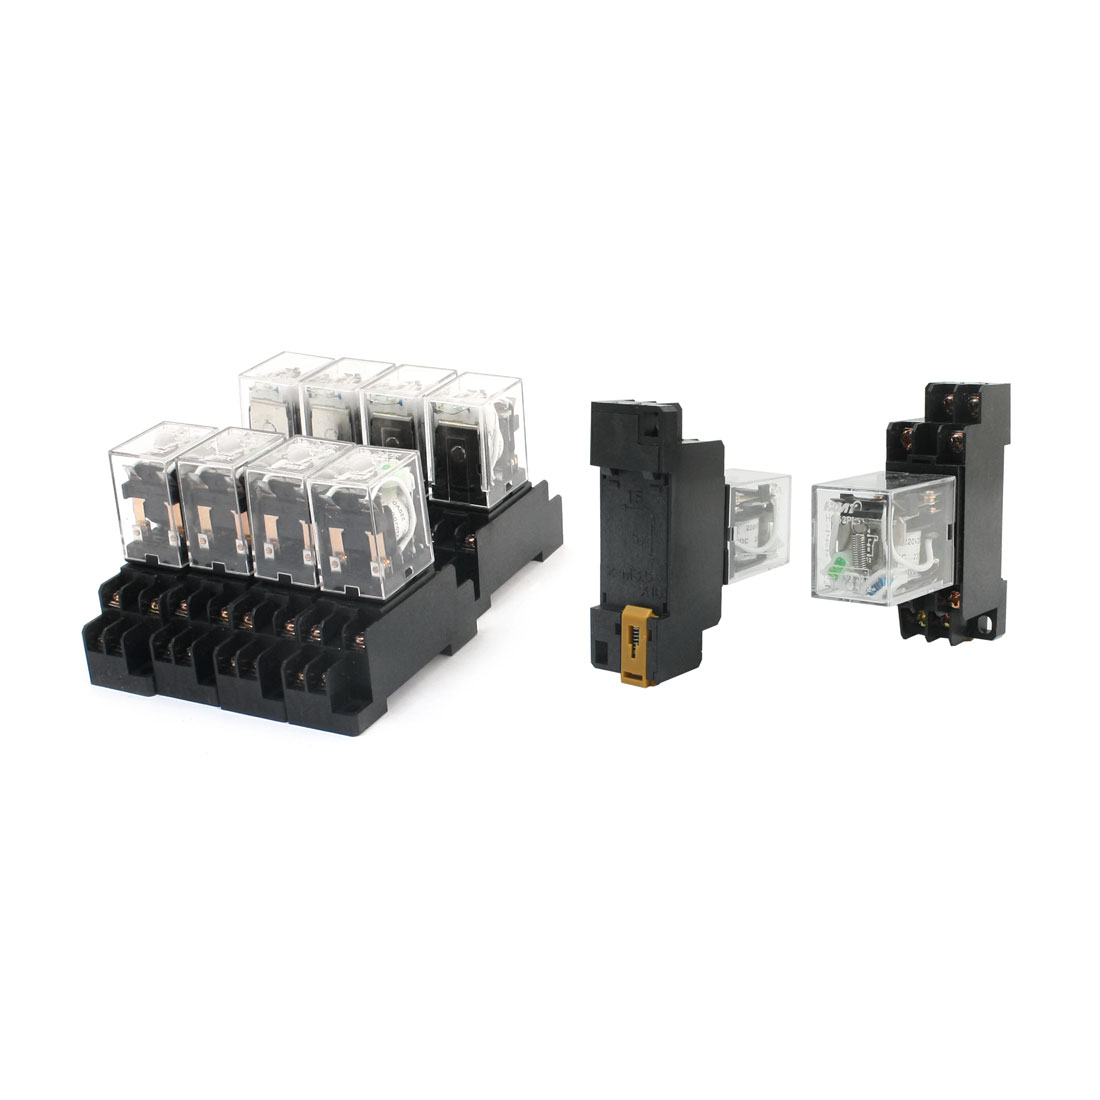 10Pcs DC 220V Coil Green Indicator Light 35mm DIN Rail Mount DPDT 2NO 2NC Plug-in Socket General Purpose Electromagnetic Power Relay HH52PL